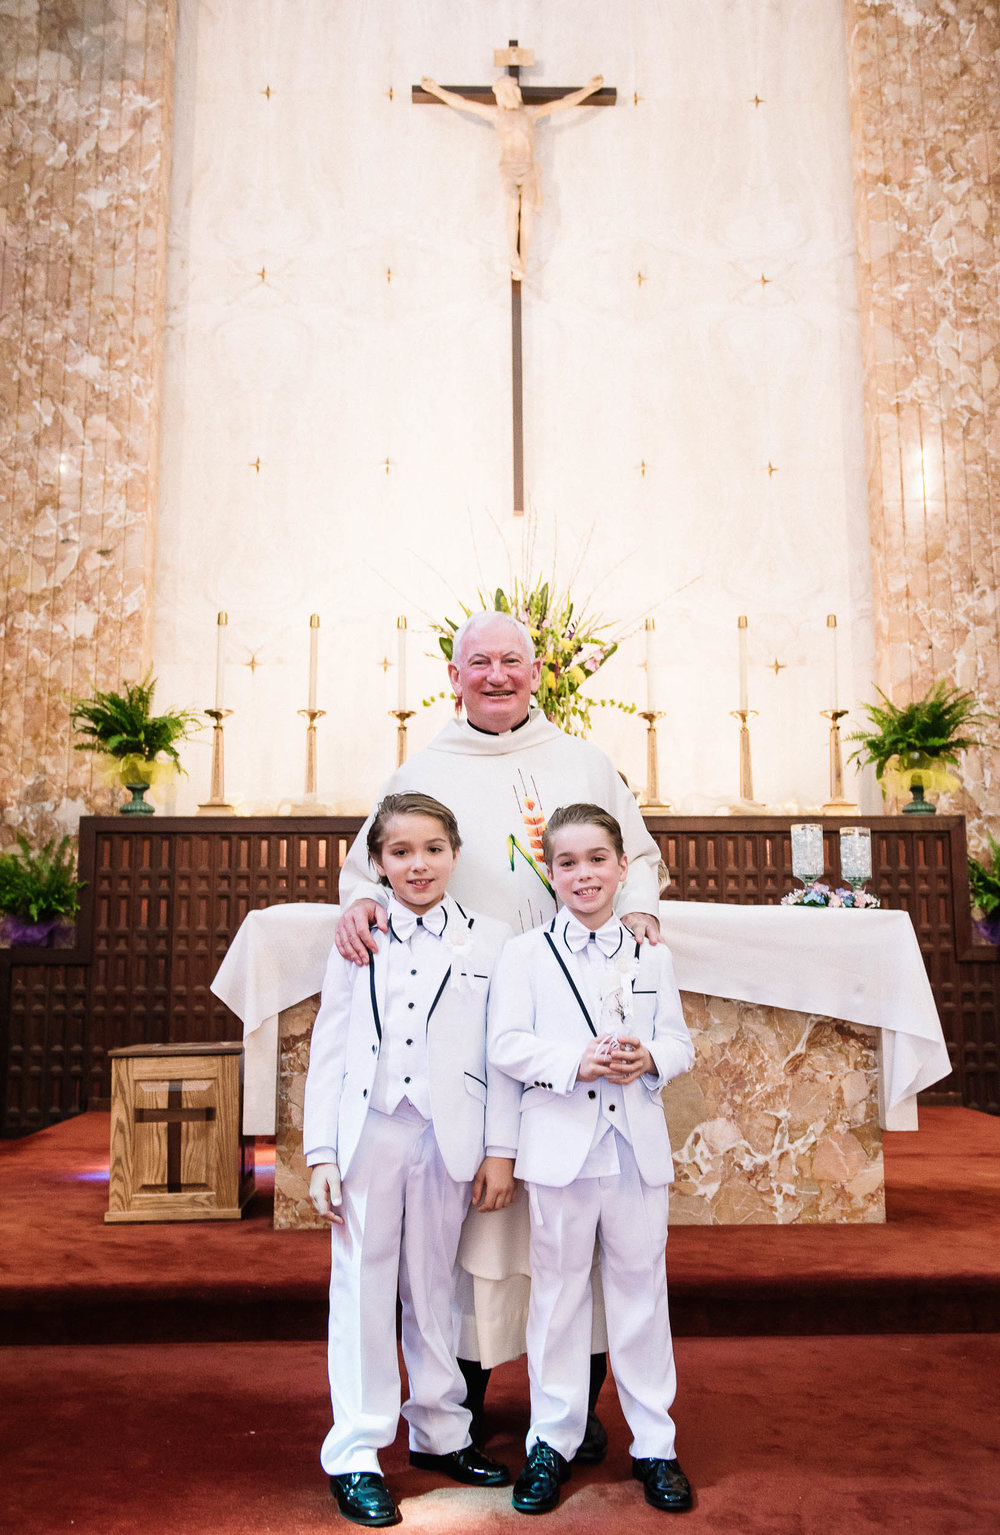 Bryan-Miraflor-Photography-First-Communion-Our-Lady-of-Grace-Church-20160501-0097.jpg